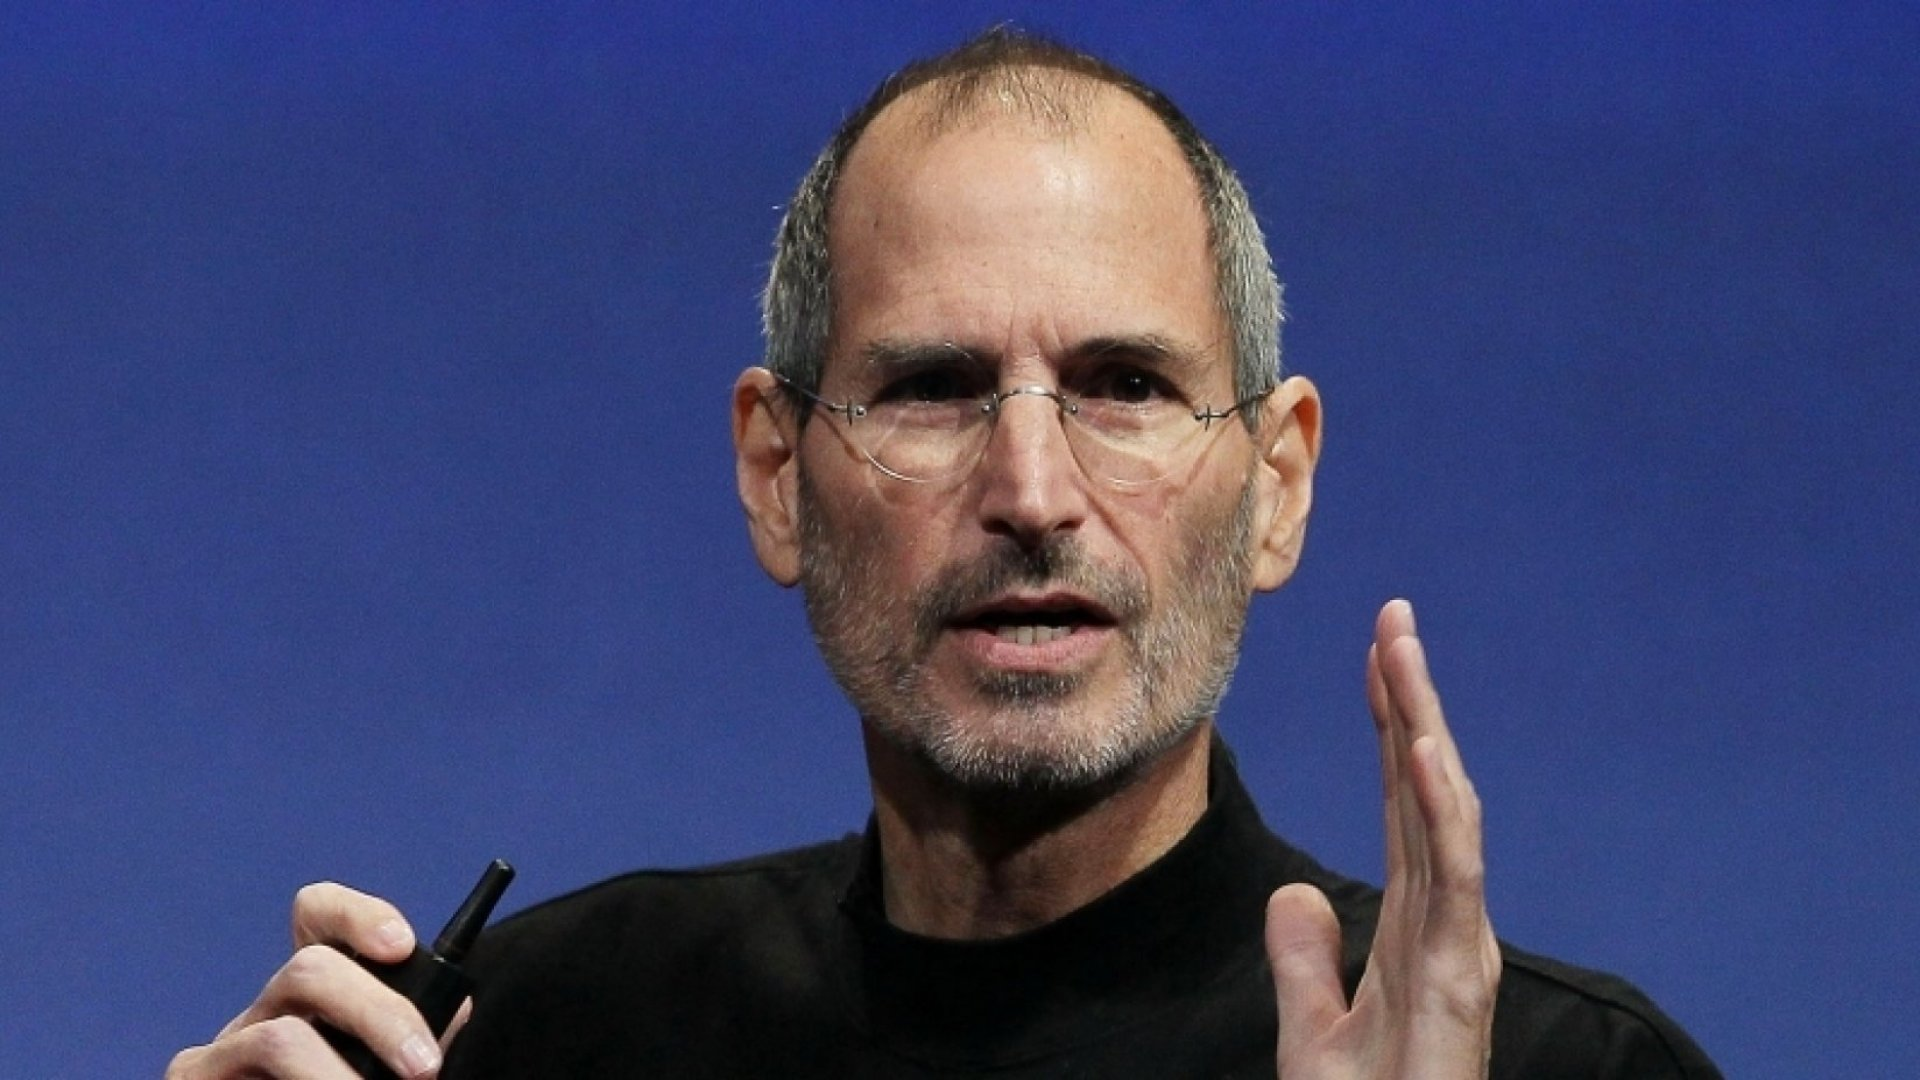 5 Important Life Lessons Steve Jobs Wanted You to Learn